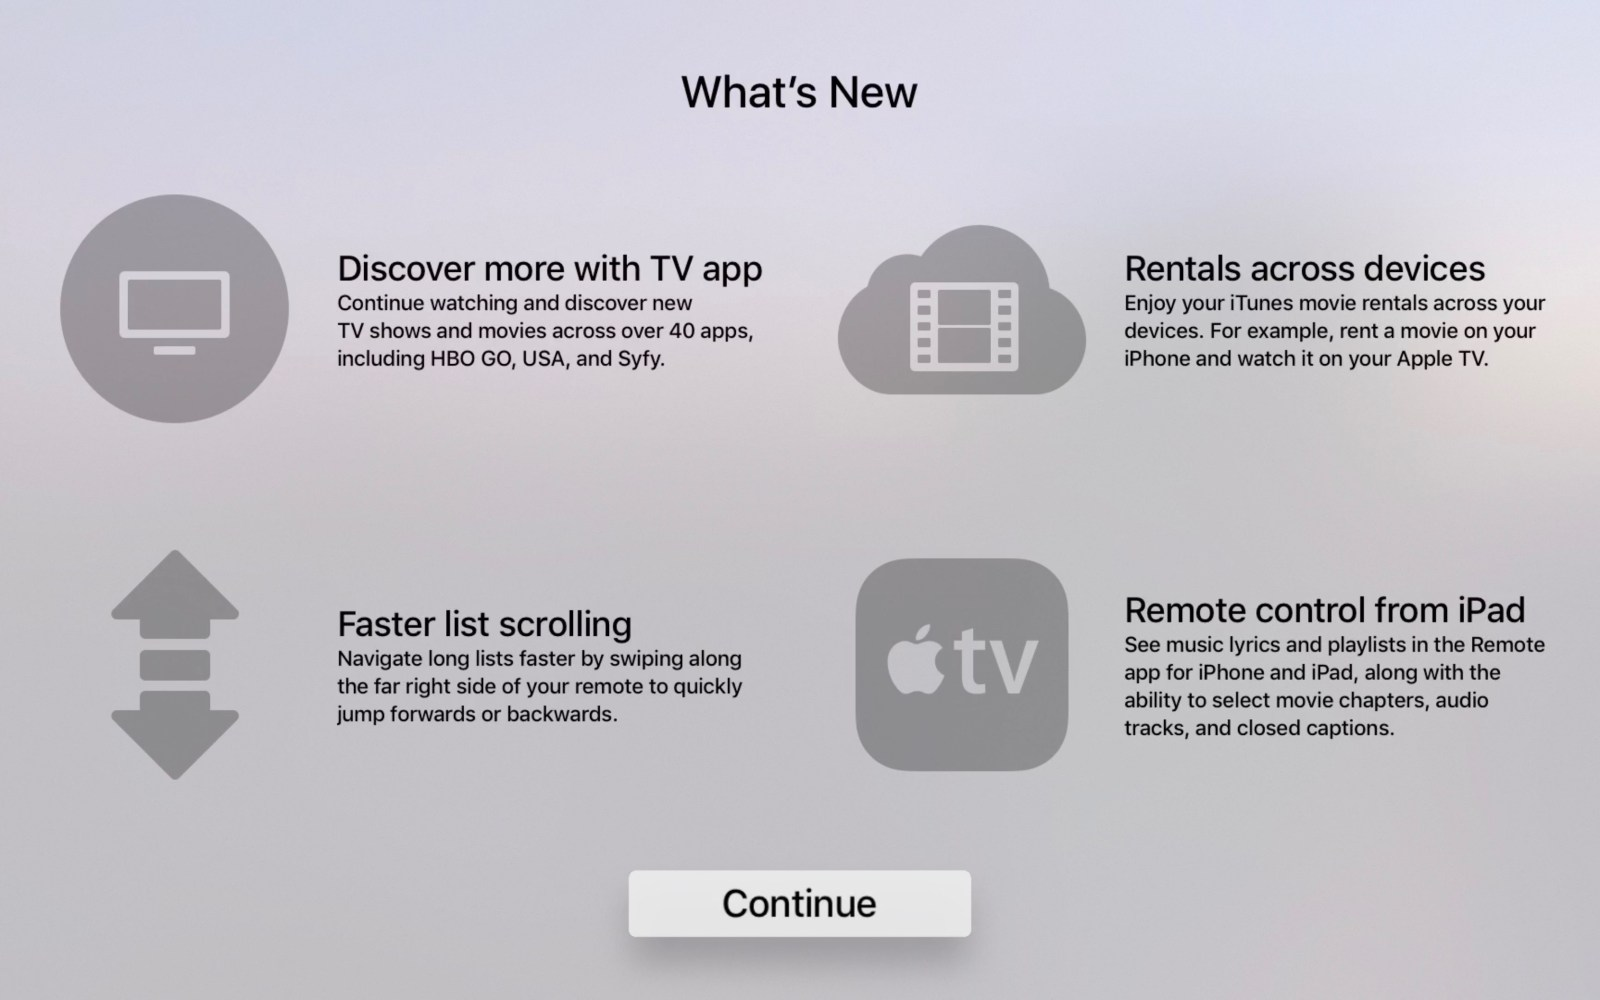 tvos 10.2 beta hints at upcoming apple tv remote for ipad, other new